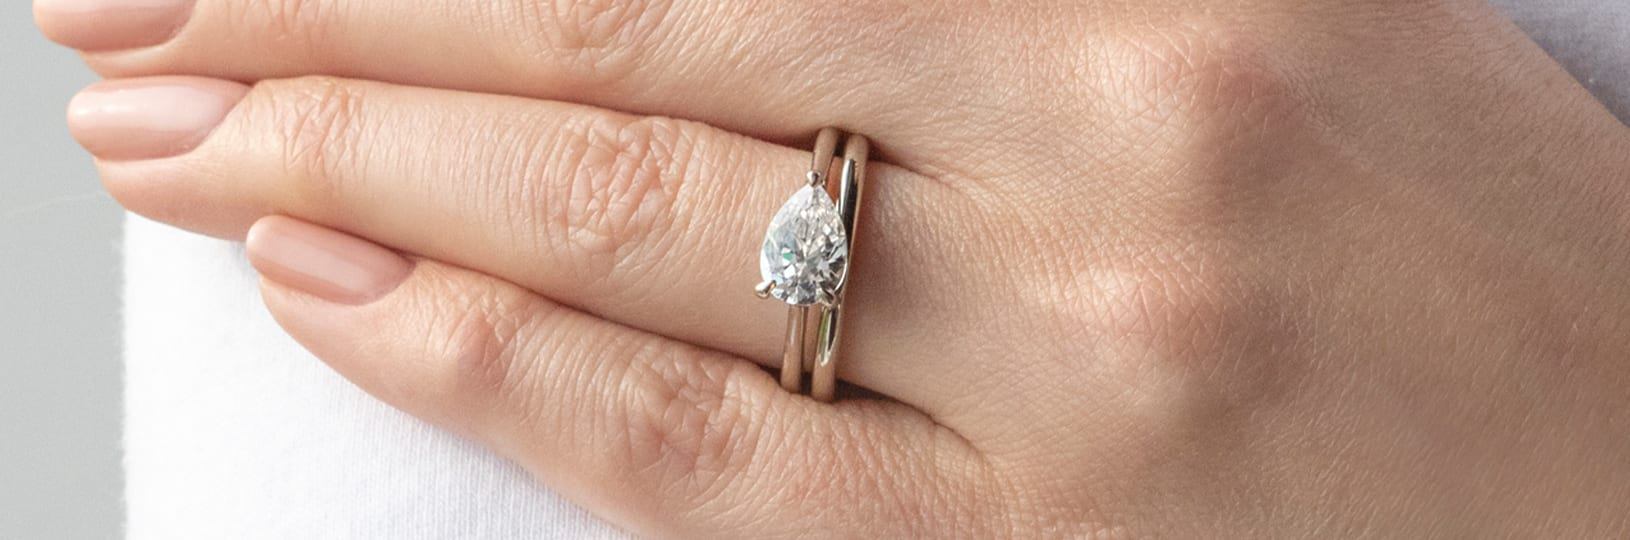 East-west solitaire engagement ring set.